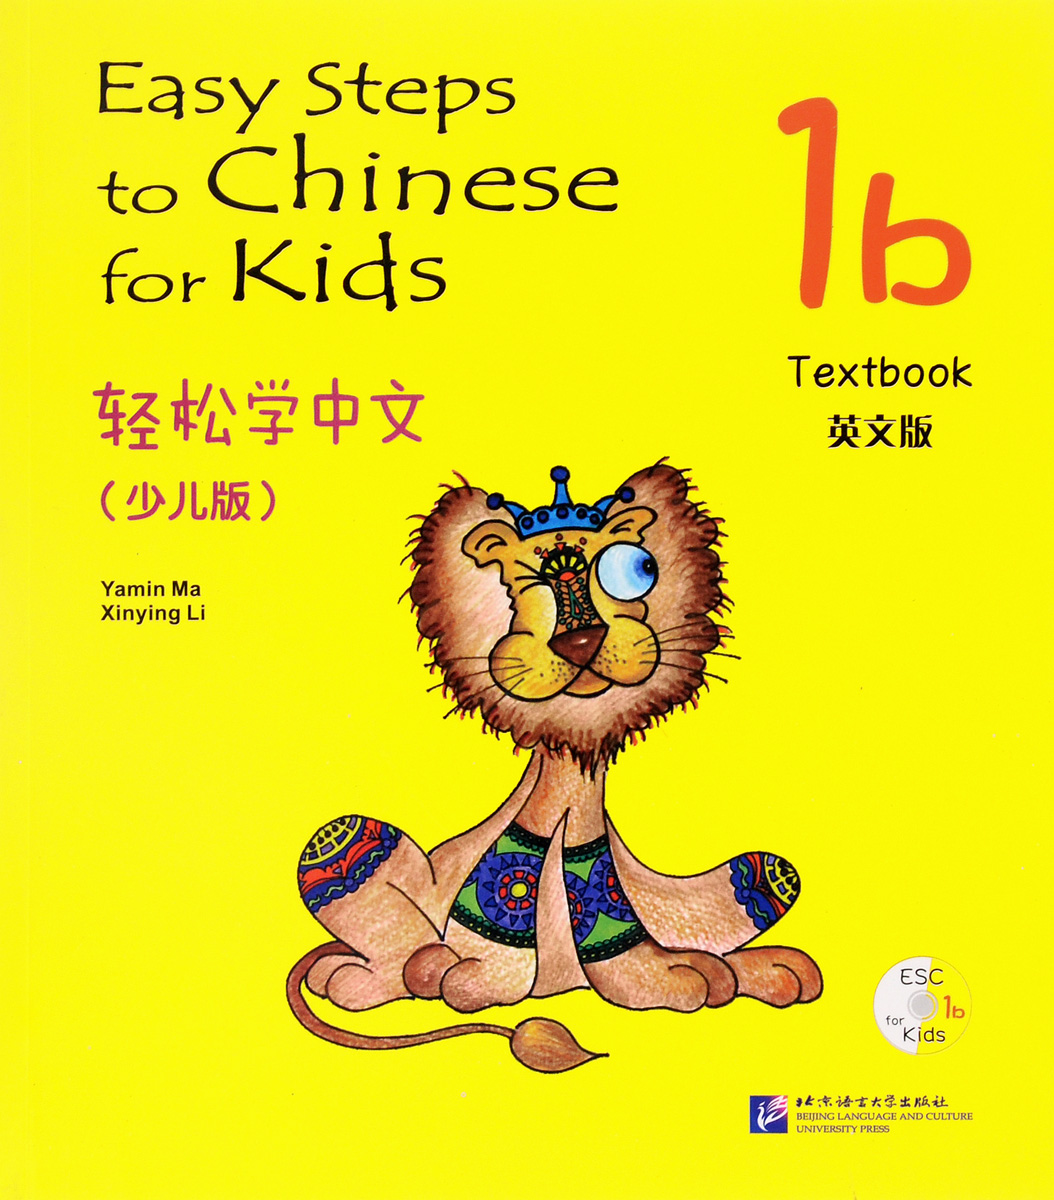 Easy Steps to Chinese for Kids: Textbook: 1b (+ СD) easy step to chinese for kids 3b textbook books in english for children chinese language beginner to study chinese